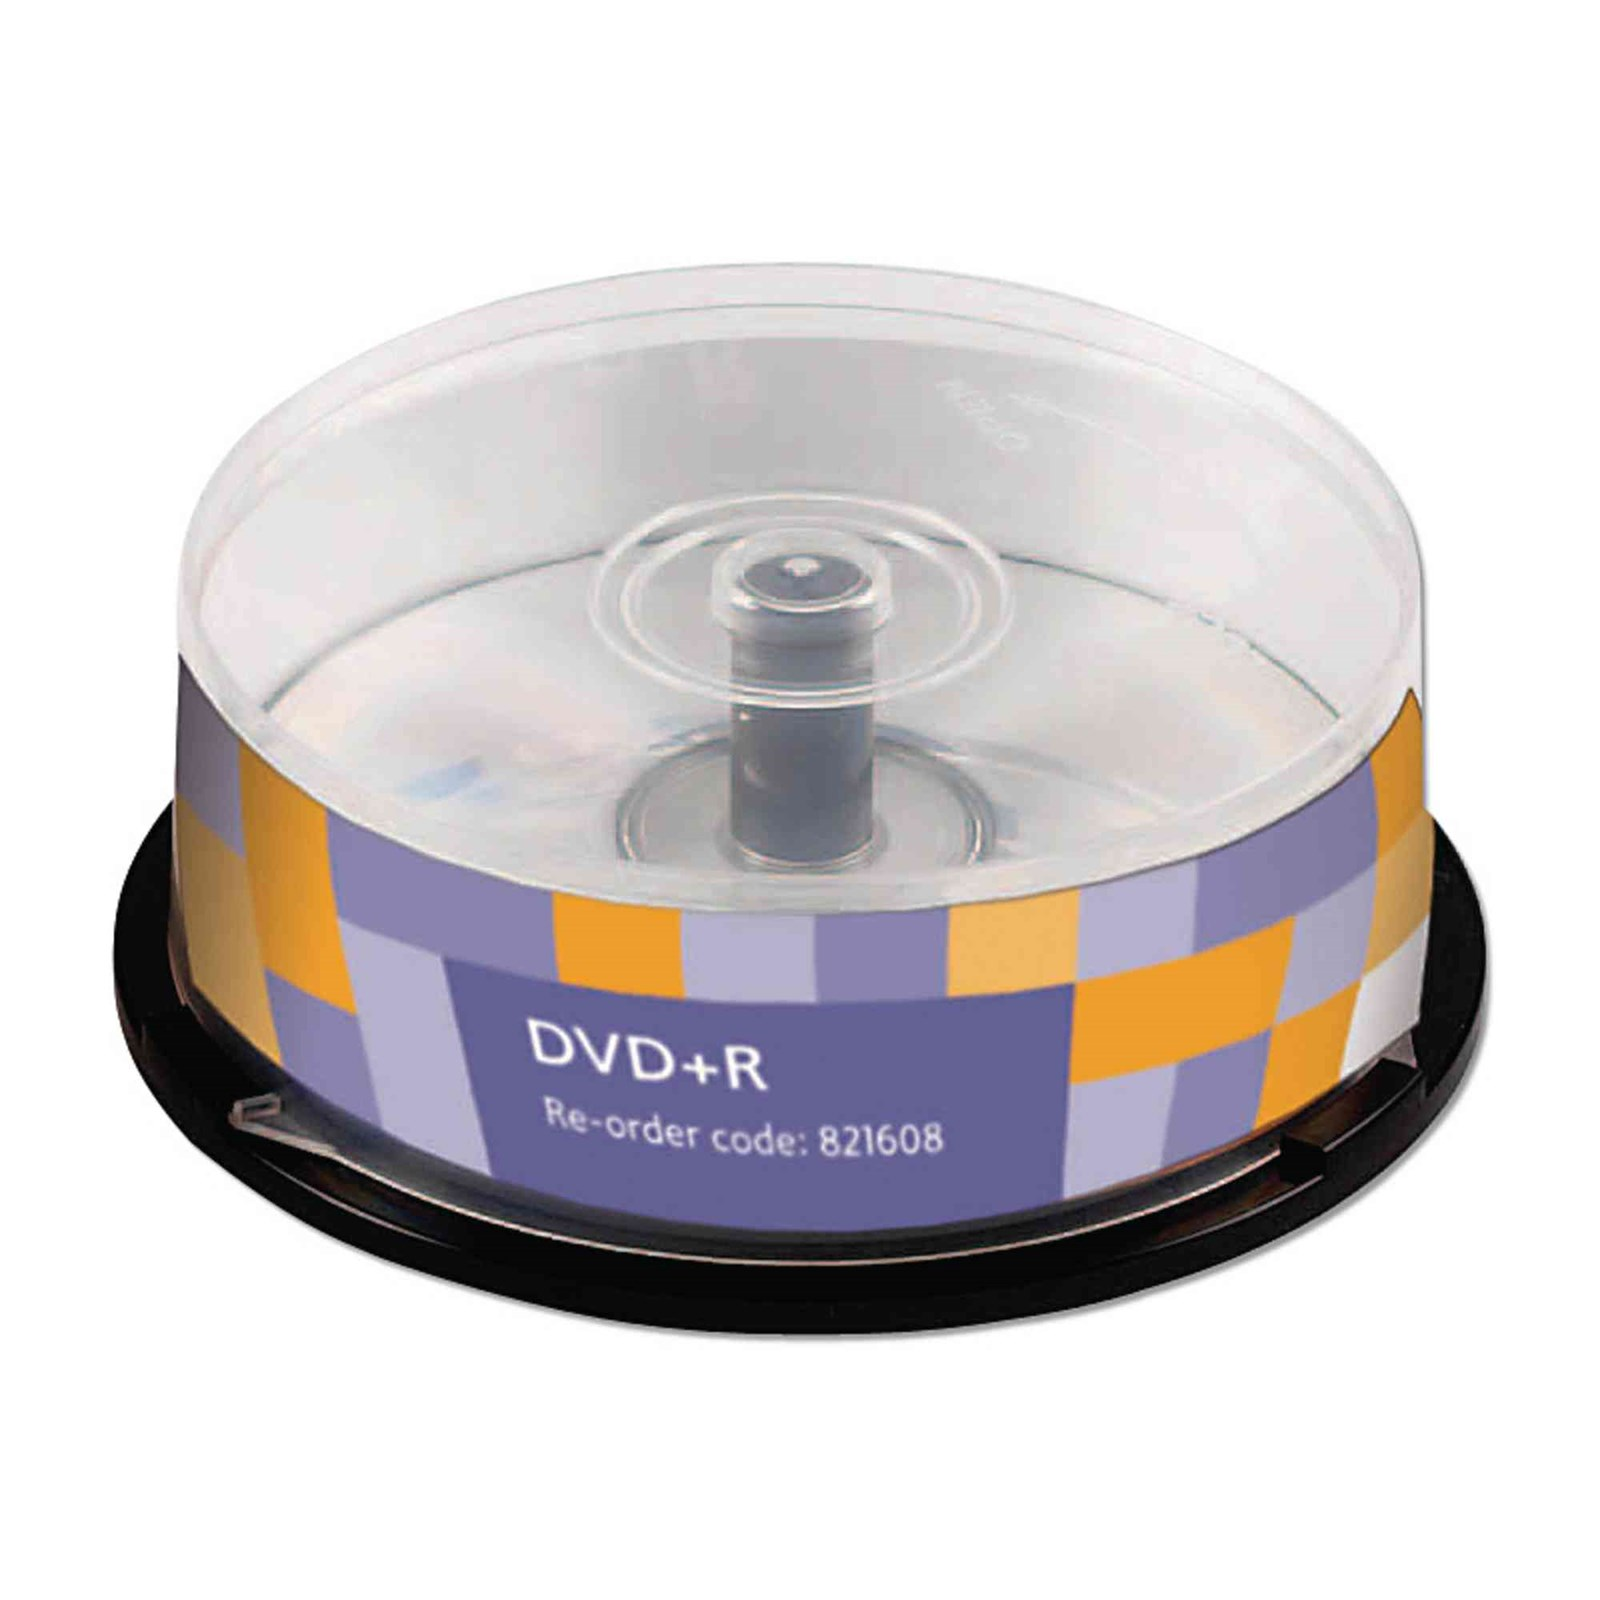 Recordable DVD Spindle - DVD -